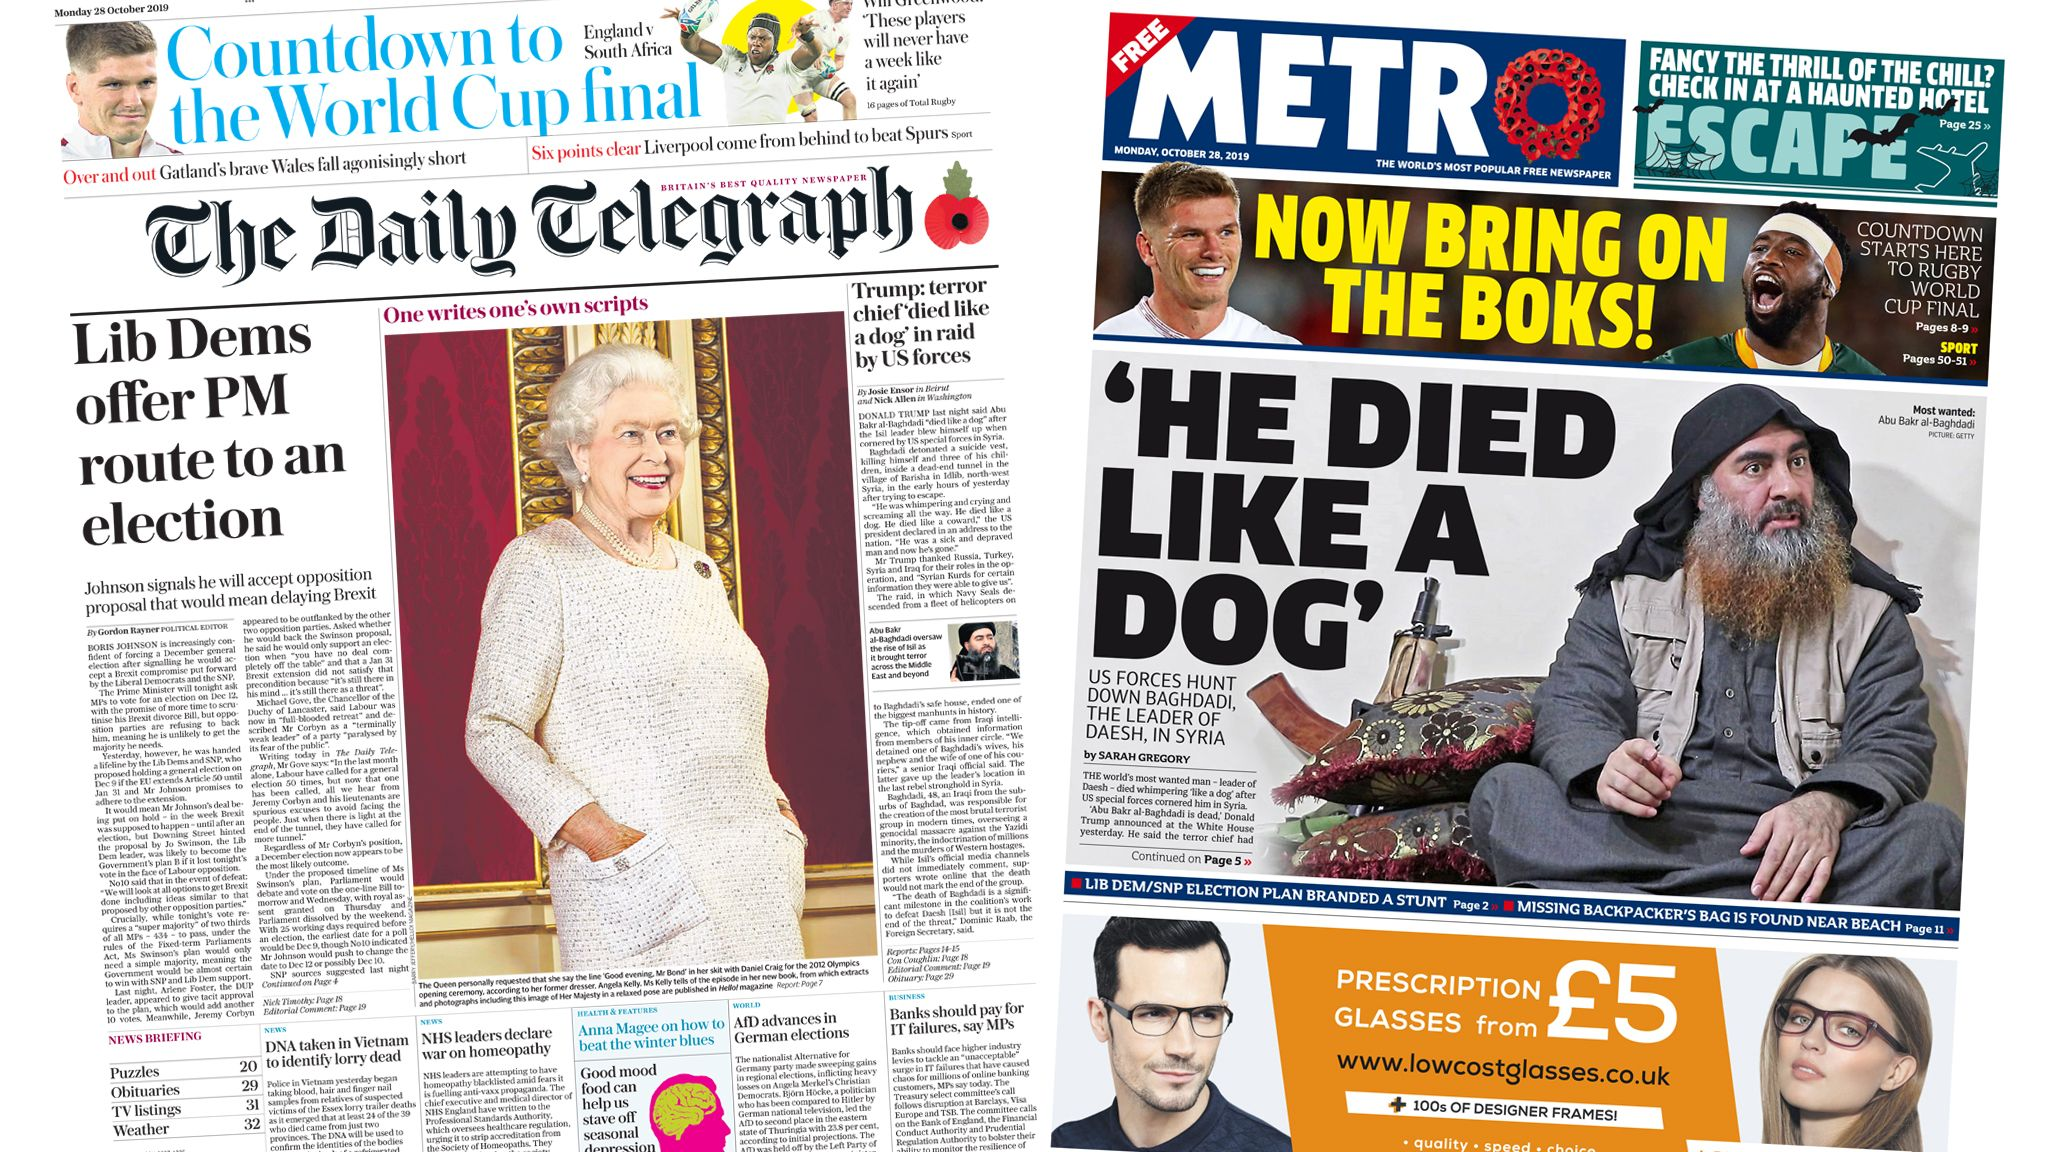 A composite of the Daily Telegraph and Metro front pages on Monday